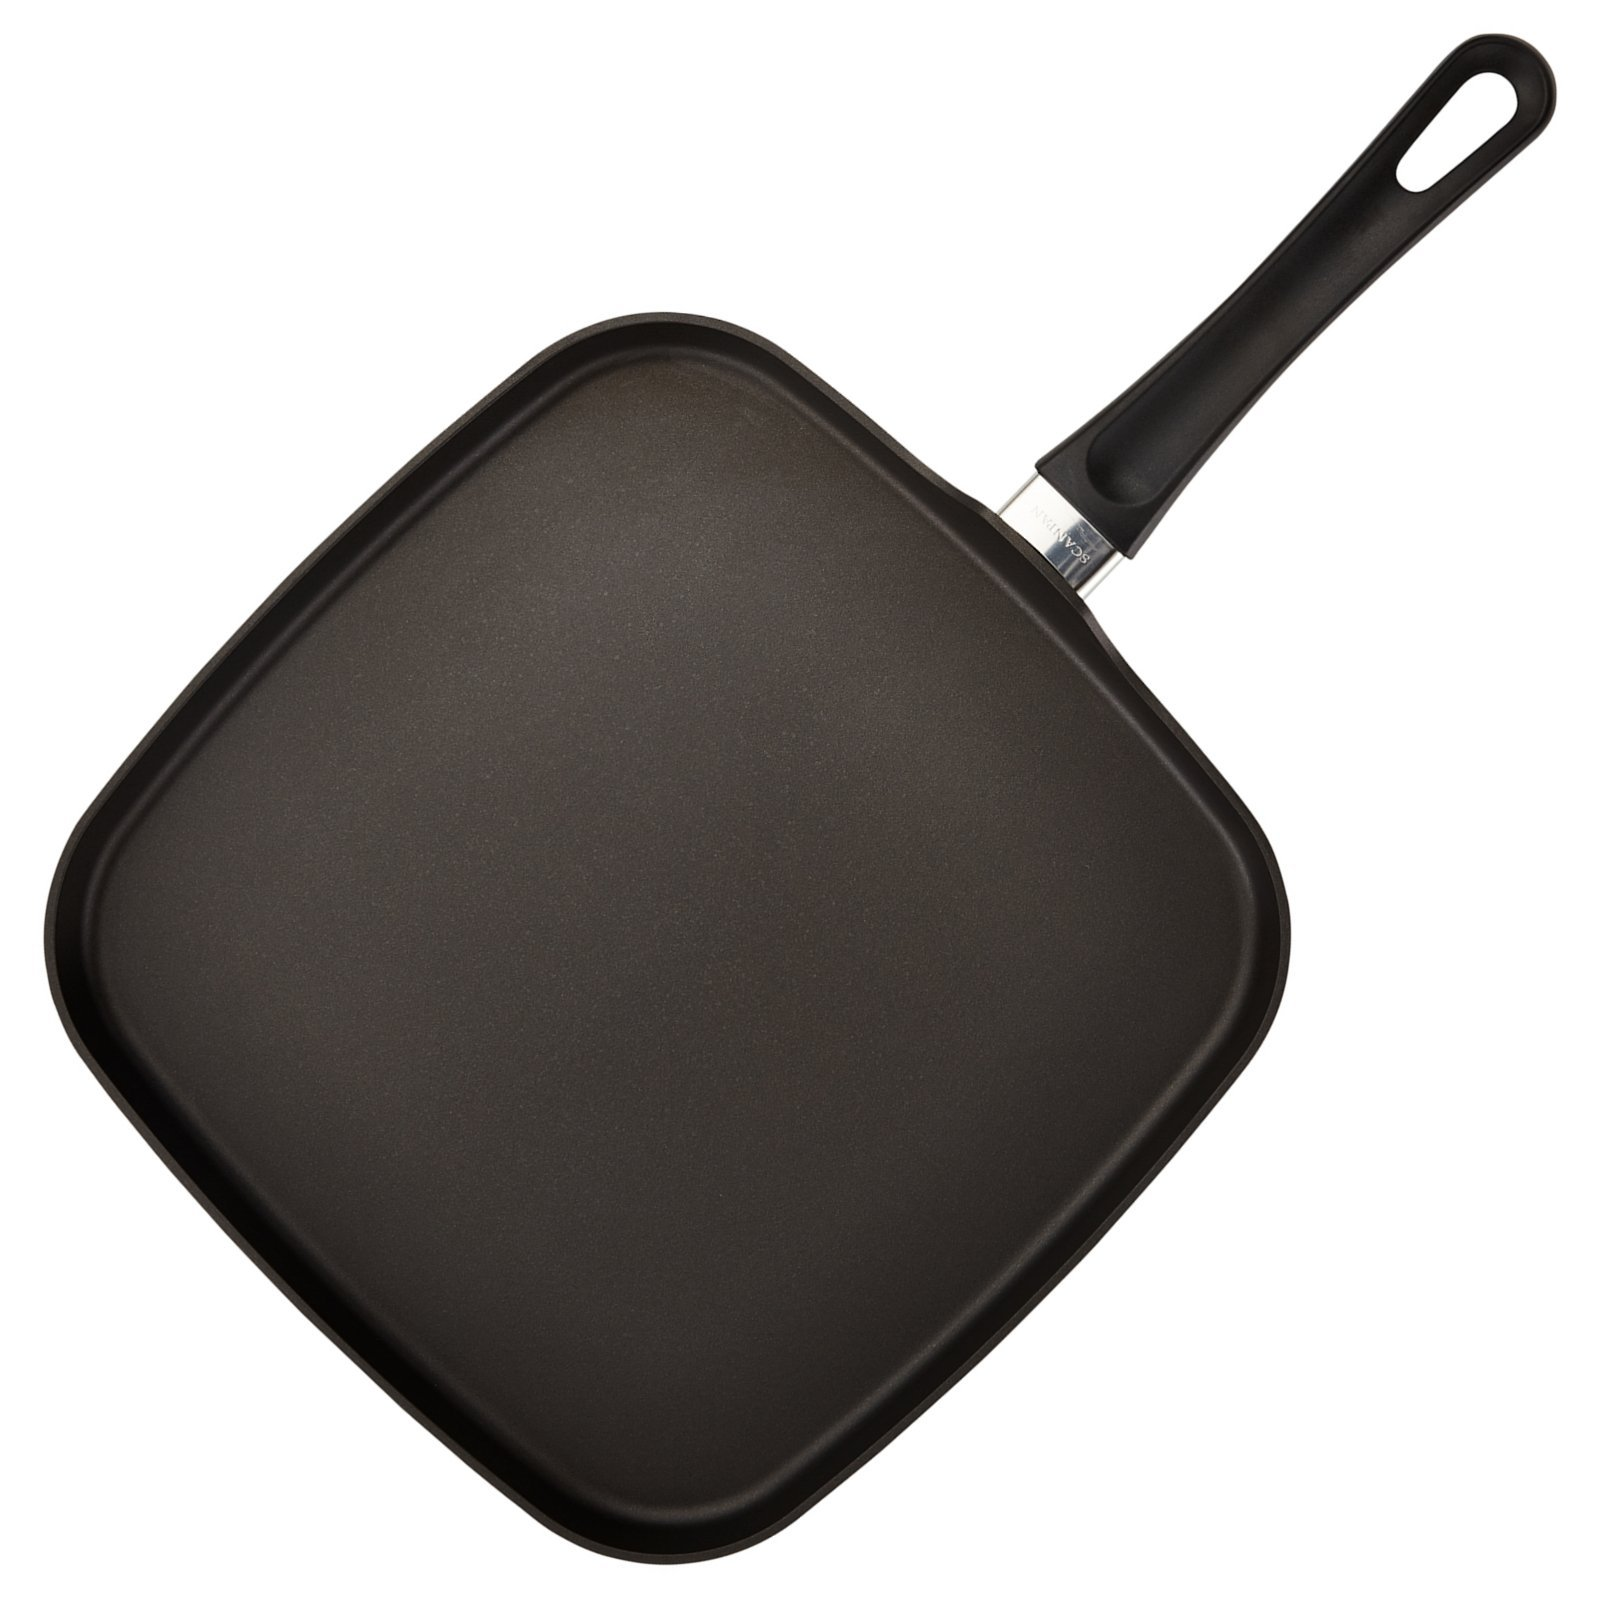 Scanpan Classic Nonstick 11 Inch Griddle Pan